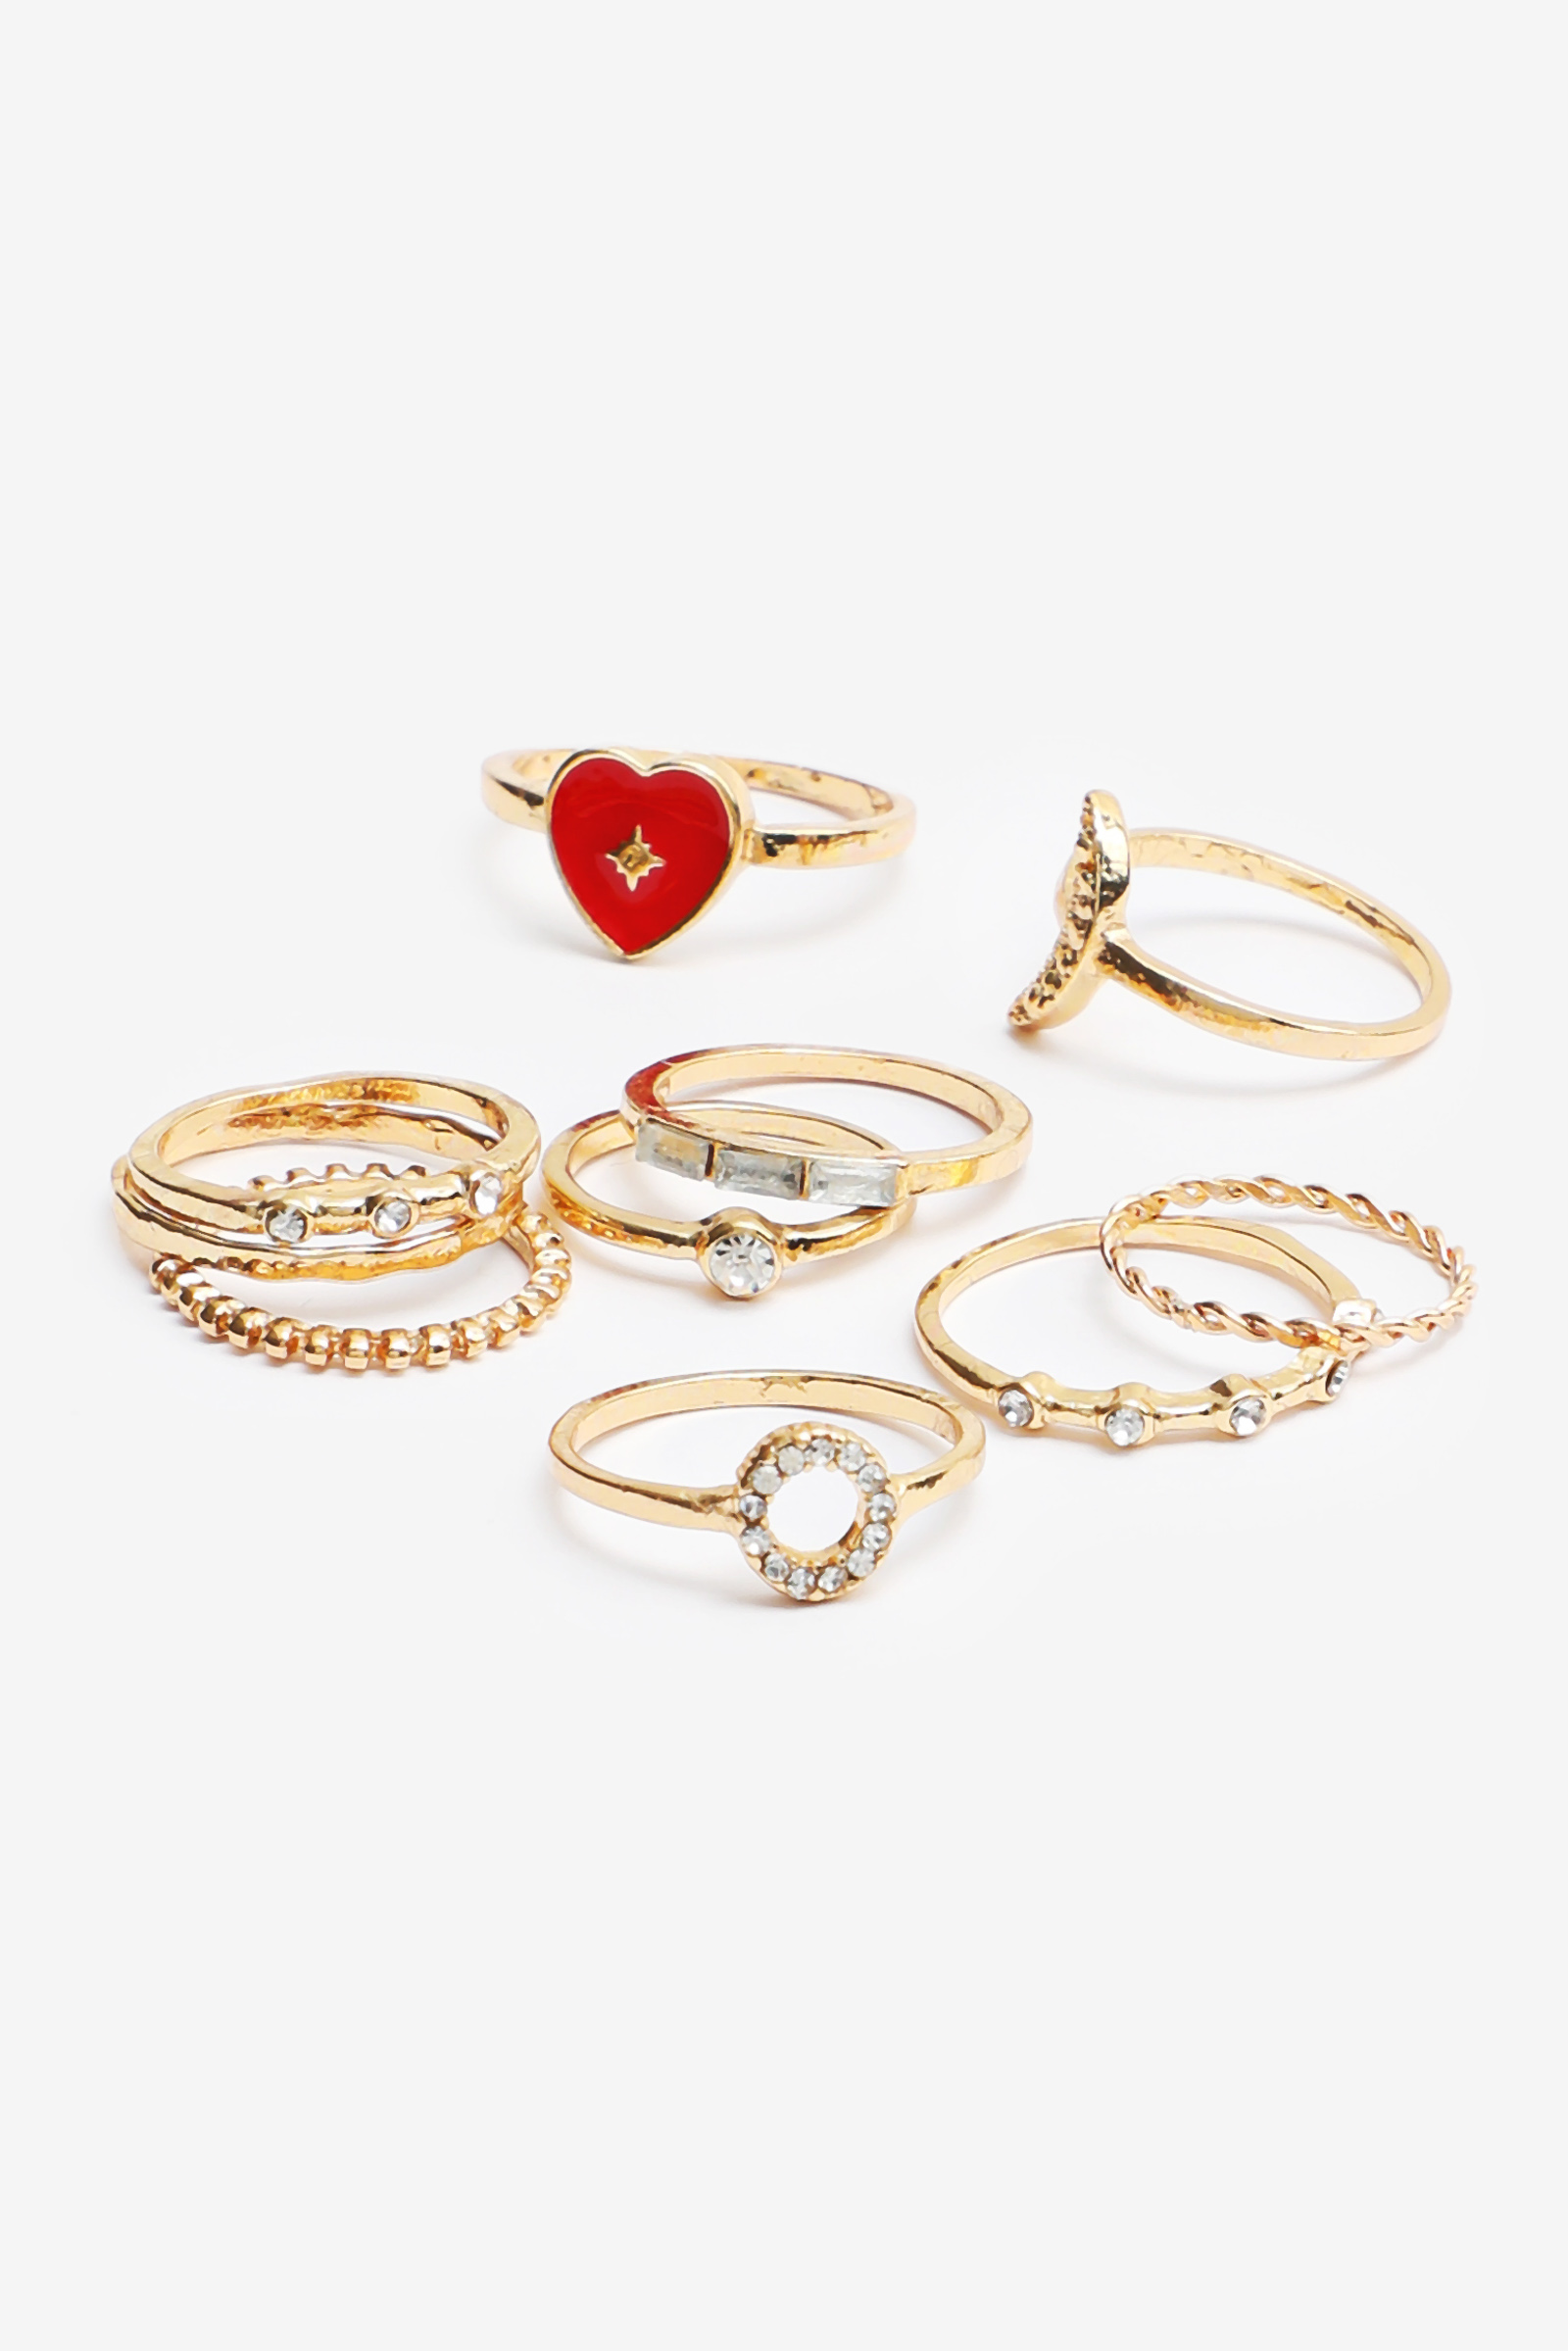 Pack of Heart and Moon Rings